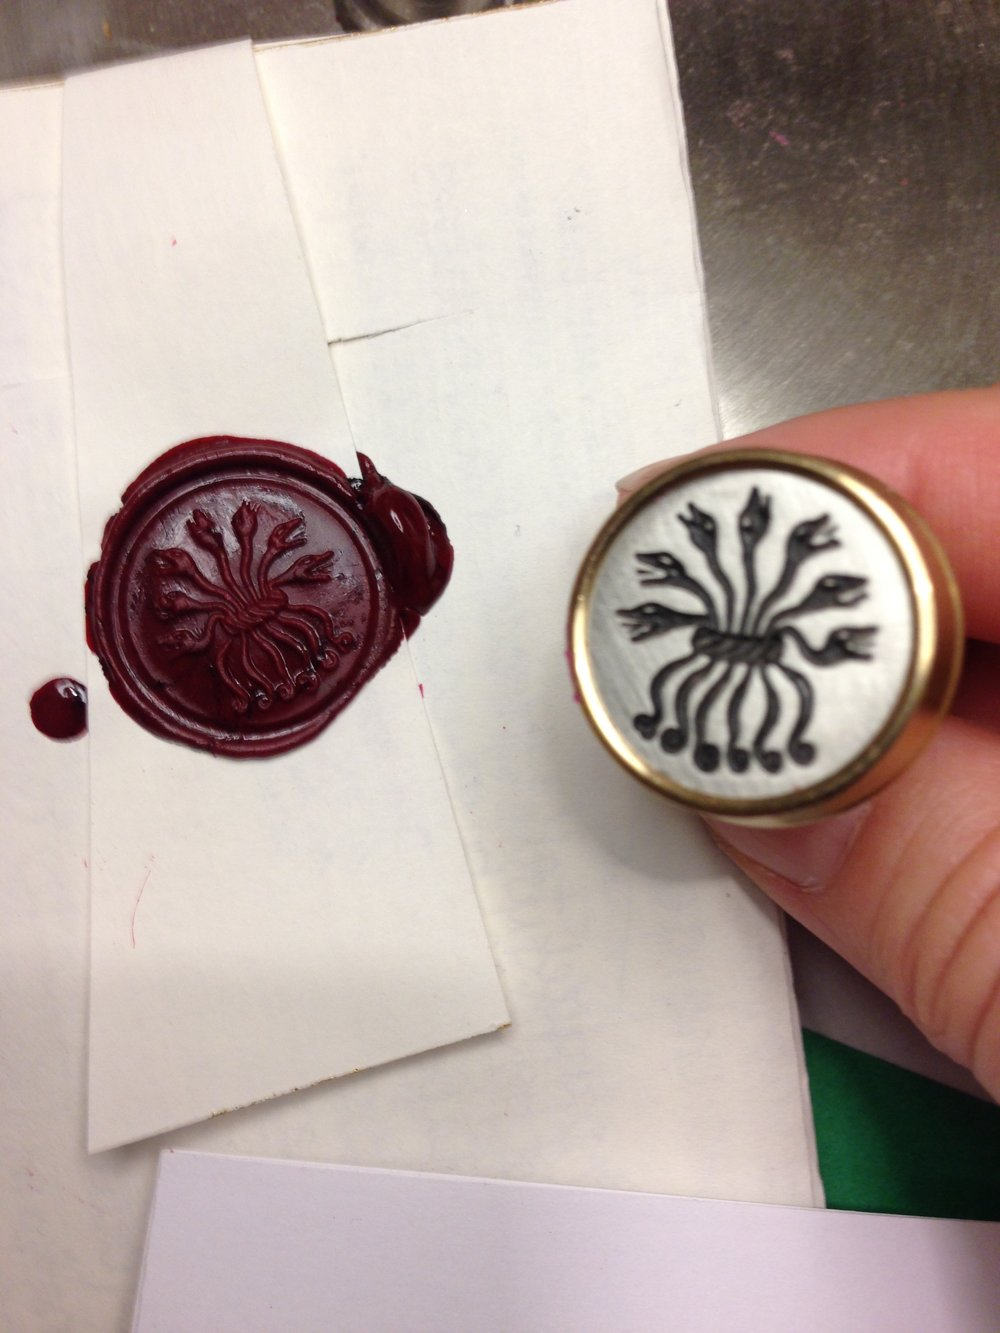 Copy of detail of exposed seal, replica John Donne seal stamp